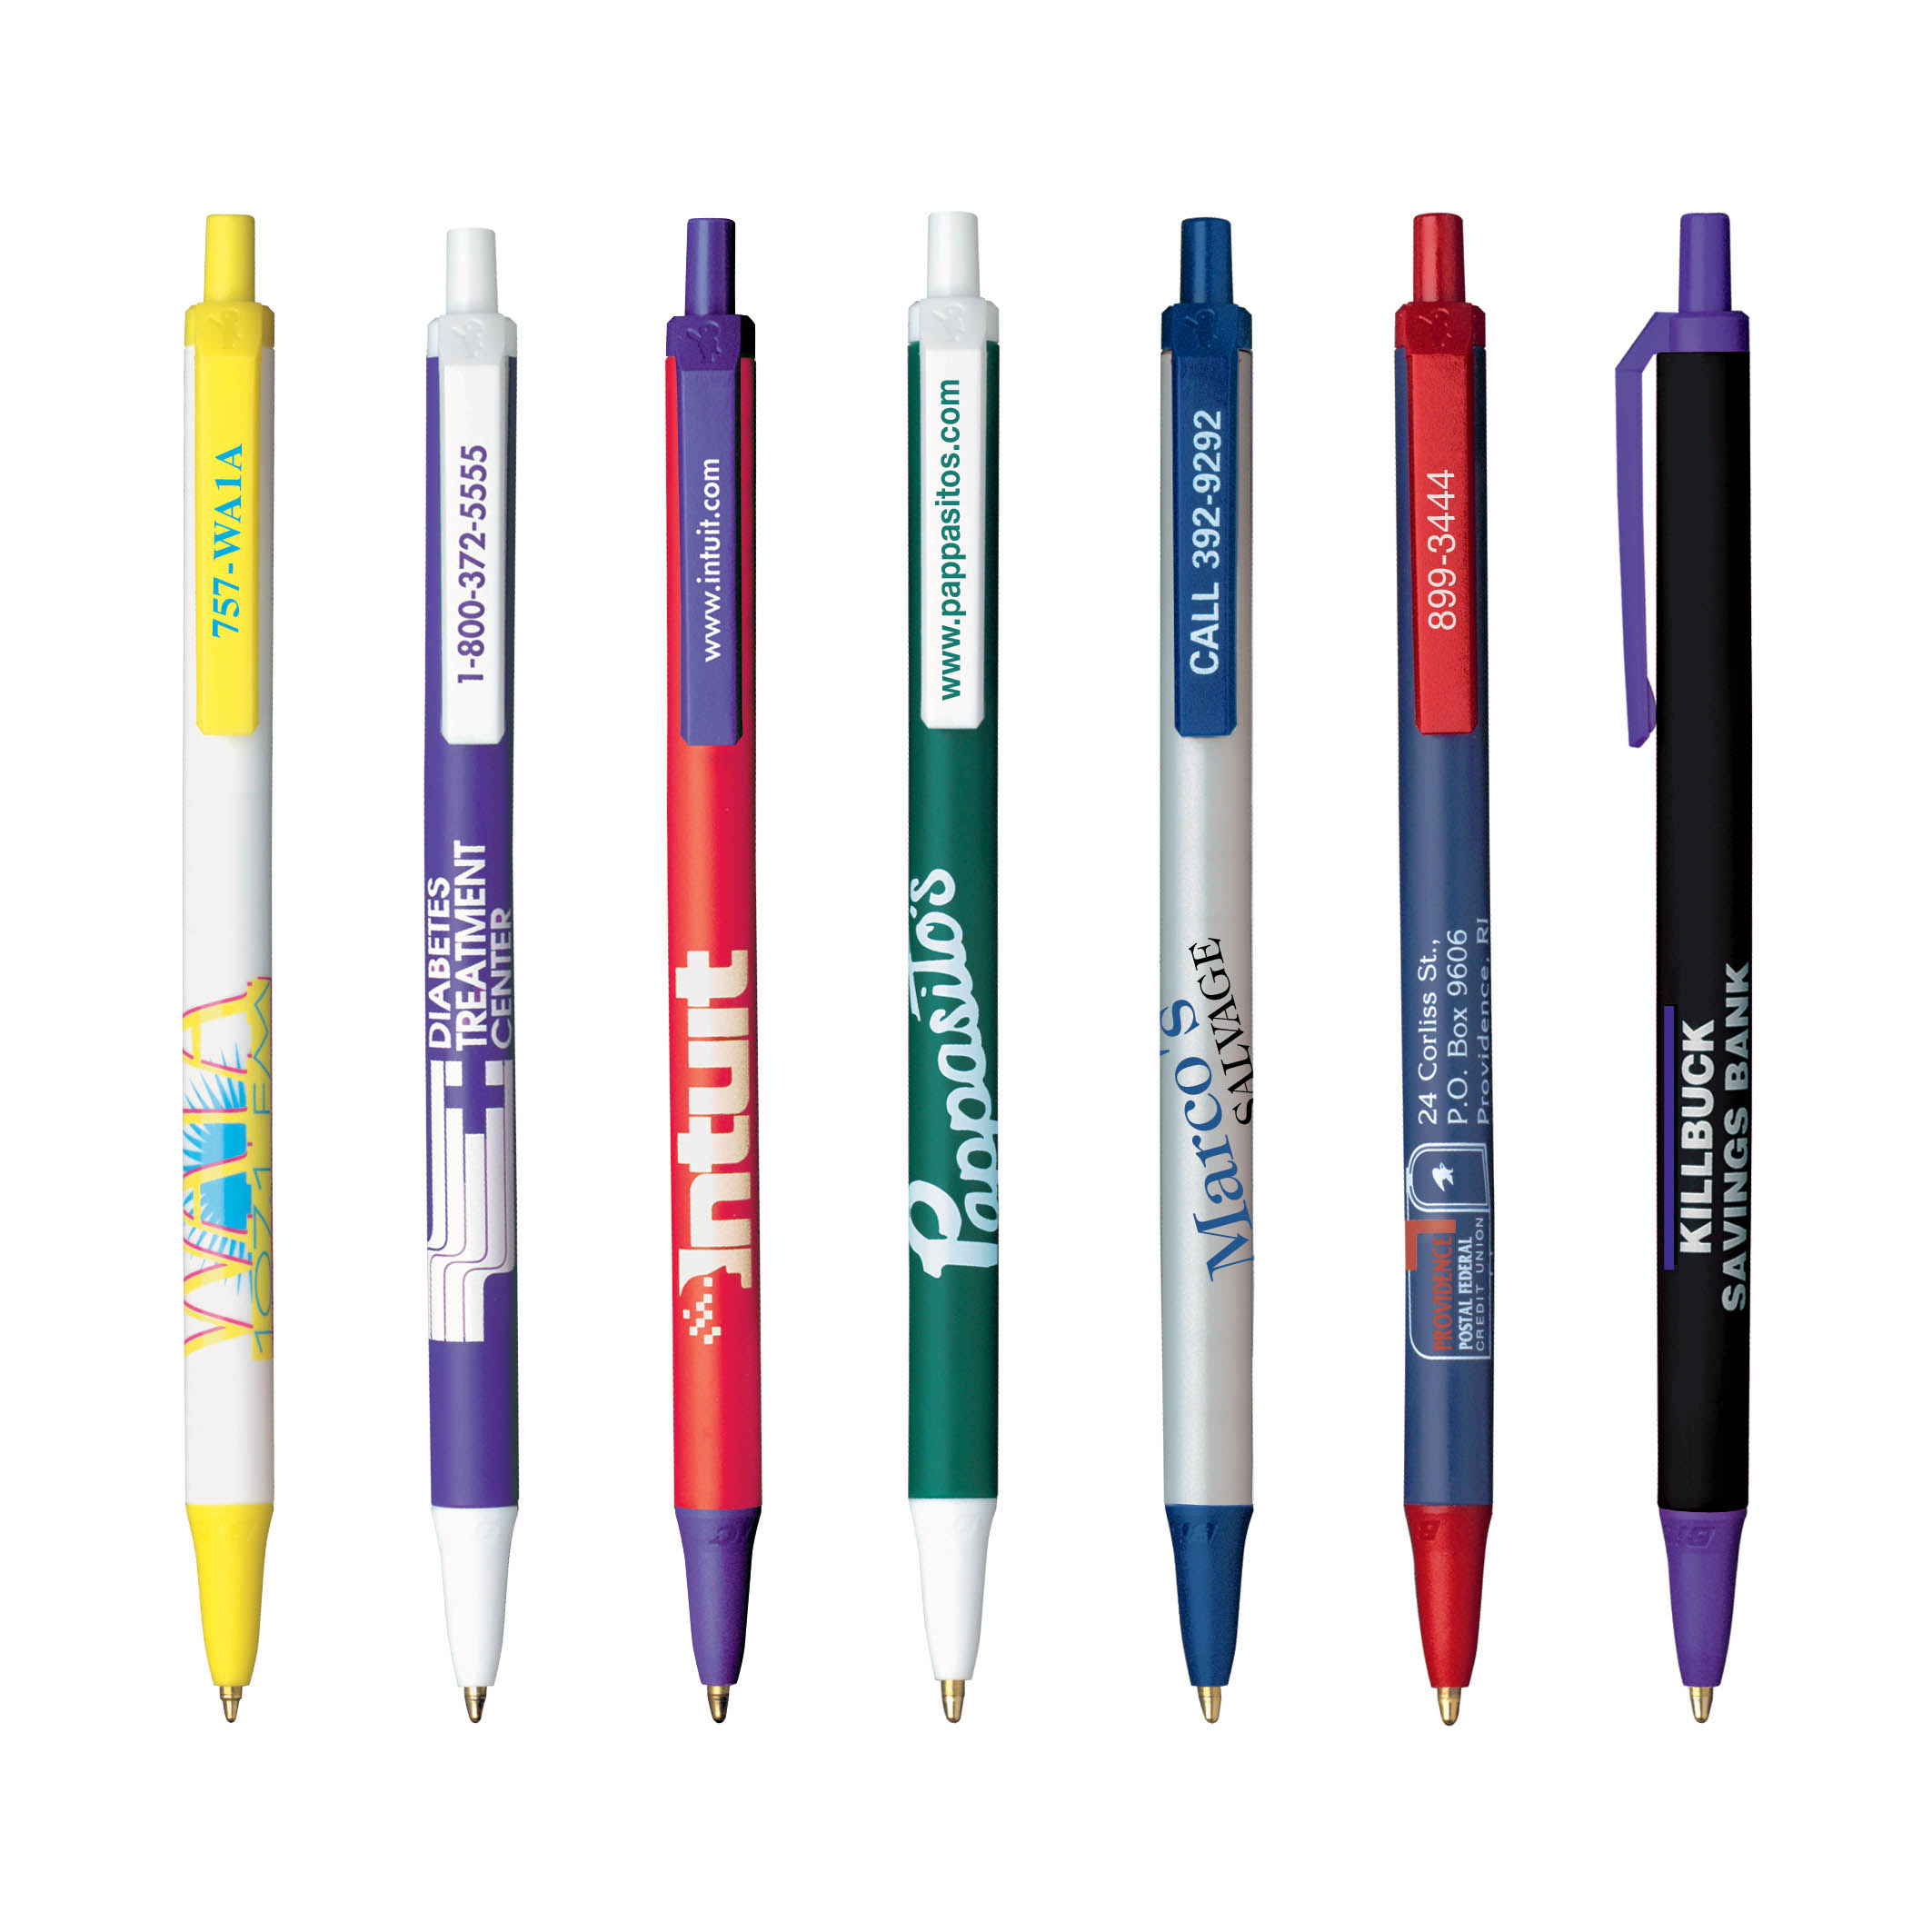 Select Well-Designed Personalized Stylus Pens For Optimum Outcomes!